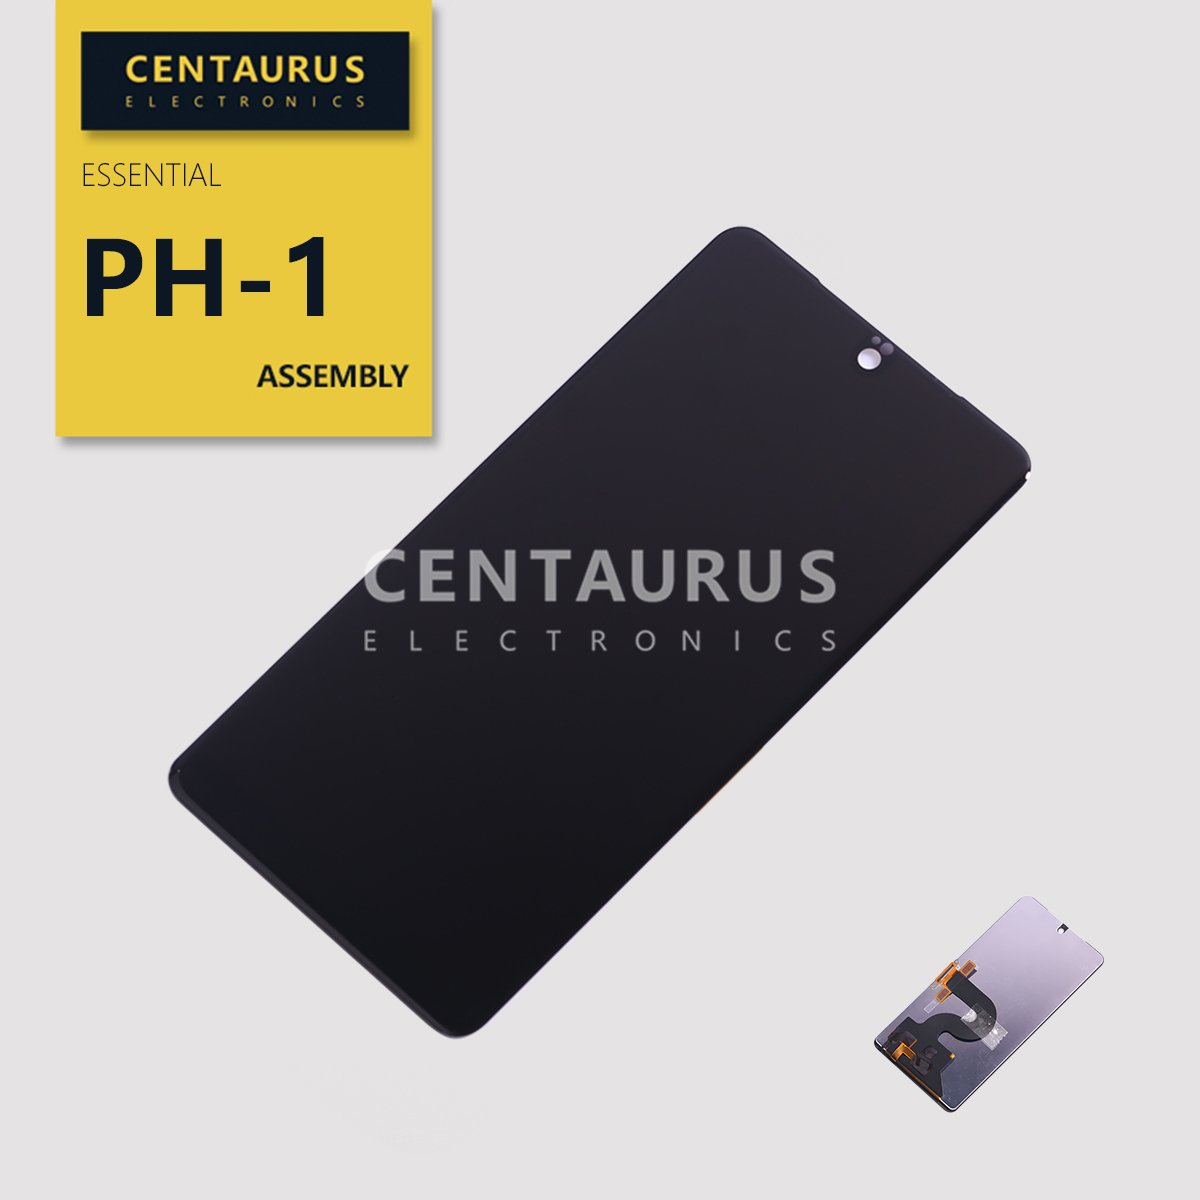 CENTAURUS Compatible with Essential PH-1 LCD Display Digitizer Touch Screen Glass Assembly Part Replacement for Essential Phone PH-1 5.7 inch (Black-NO Frame) by CE CENTAURUS ELECTRONICS